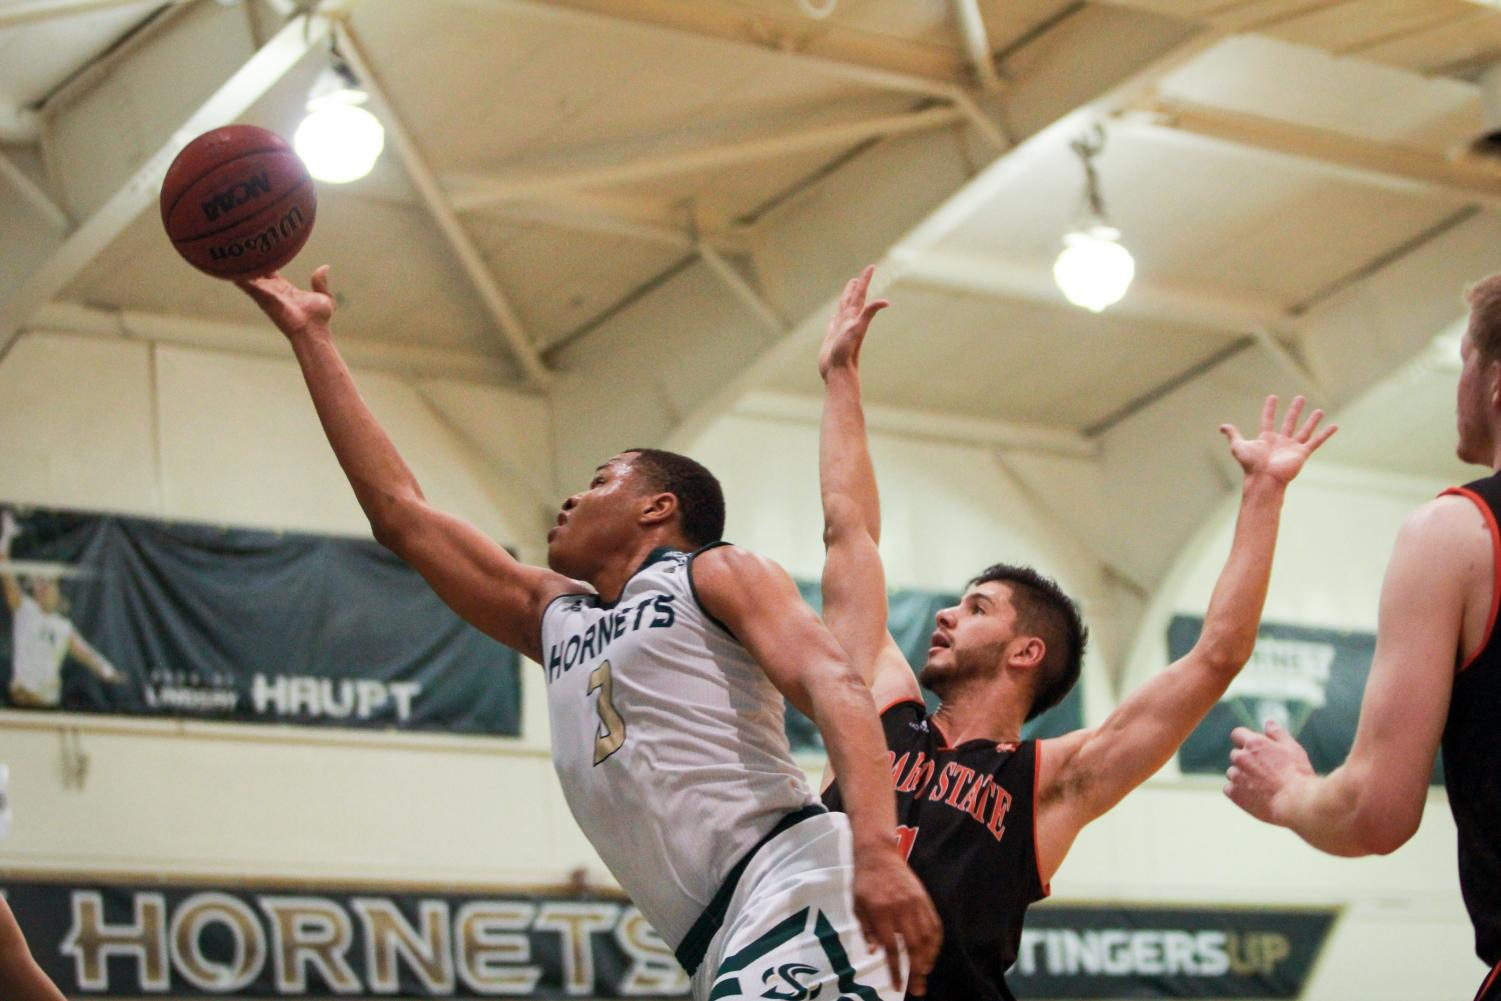 Sacramento State senior forward Justin Strings shoots a layup against Idaho State Thursday, Feb. 15 at the Nest. Strings finished with 24 points in a 67-64 loss to the Bengals.